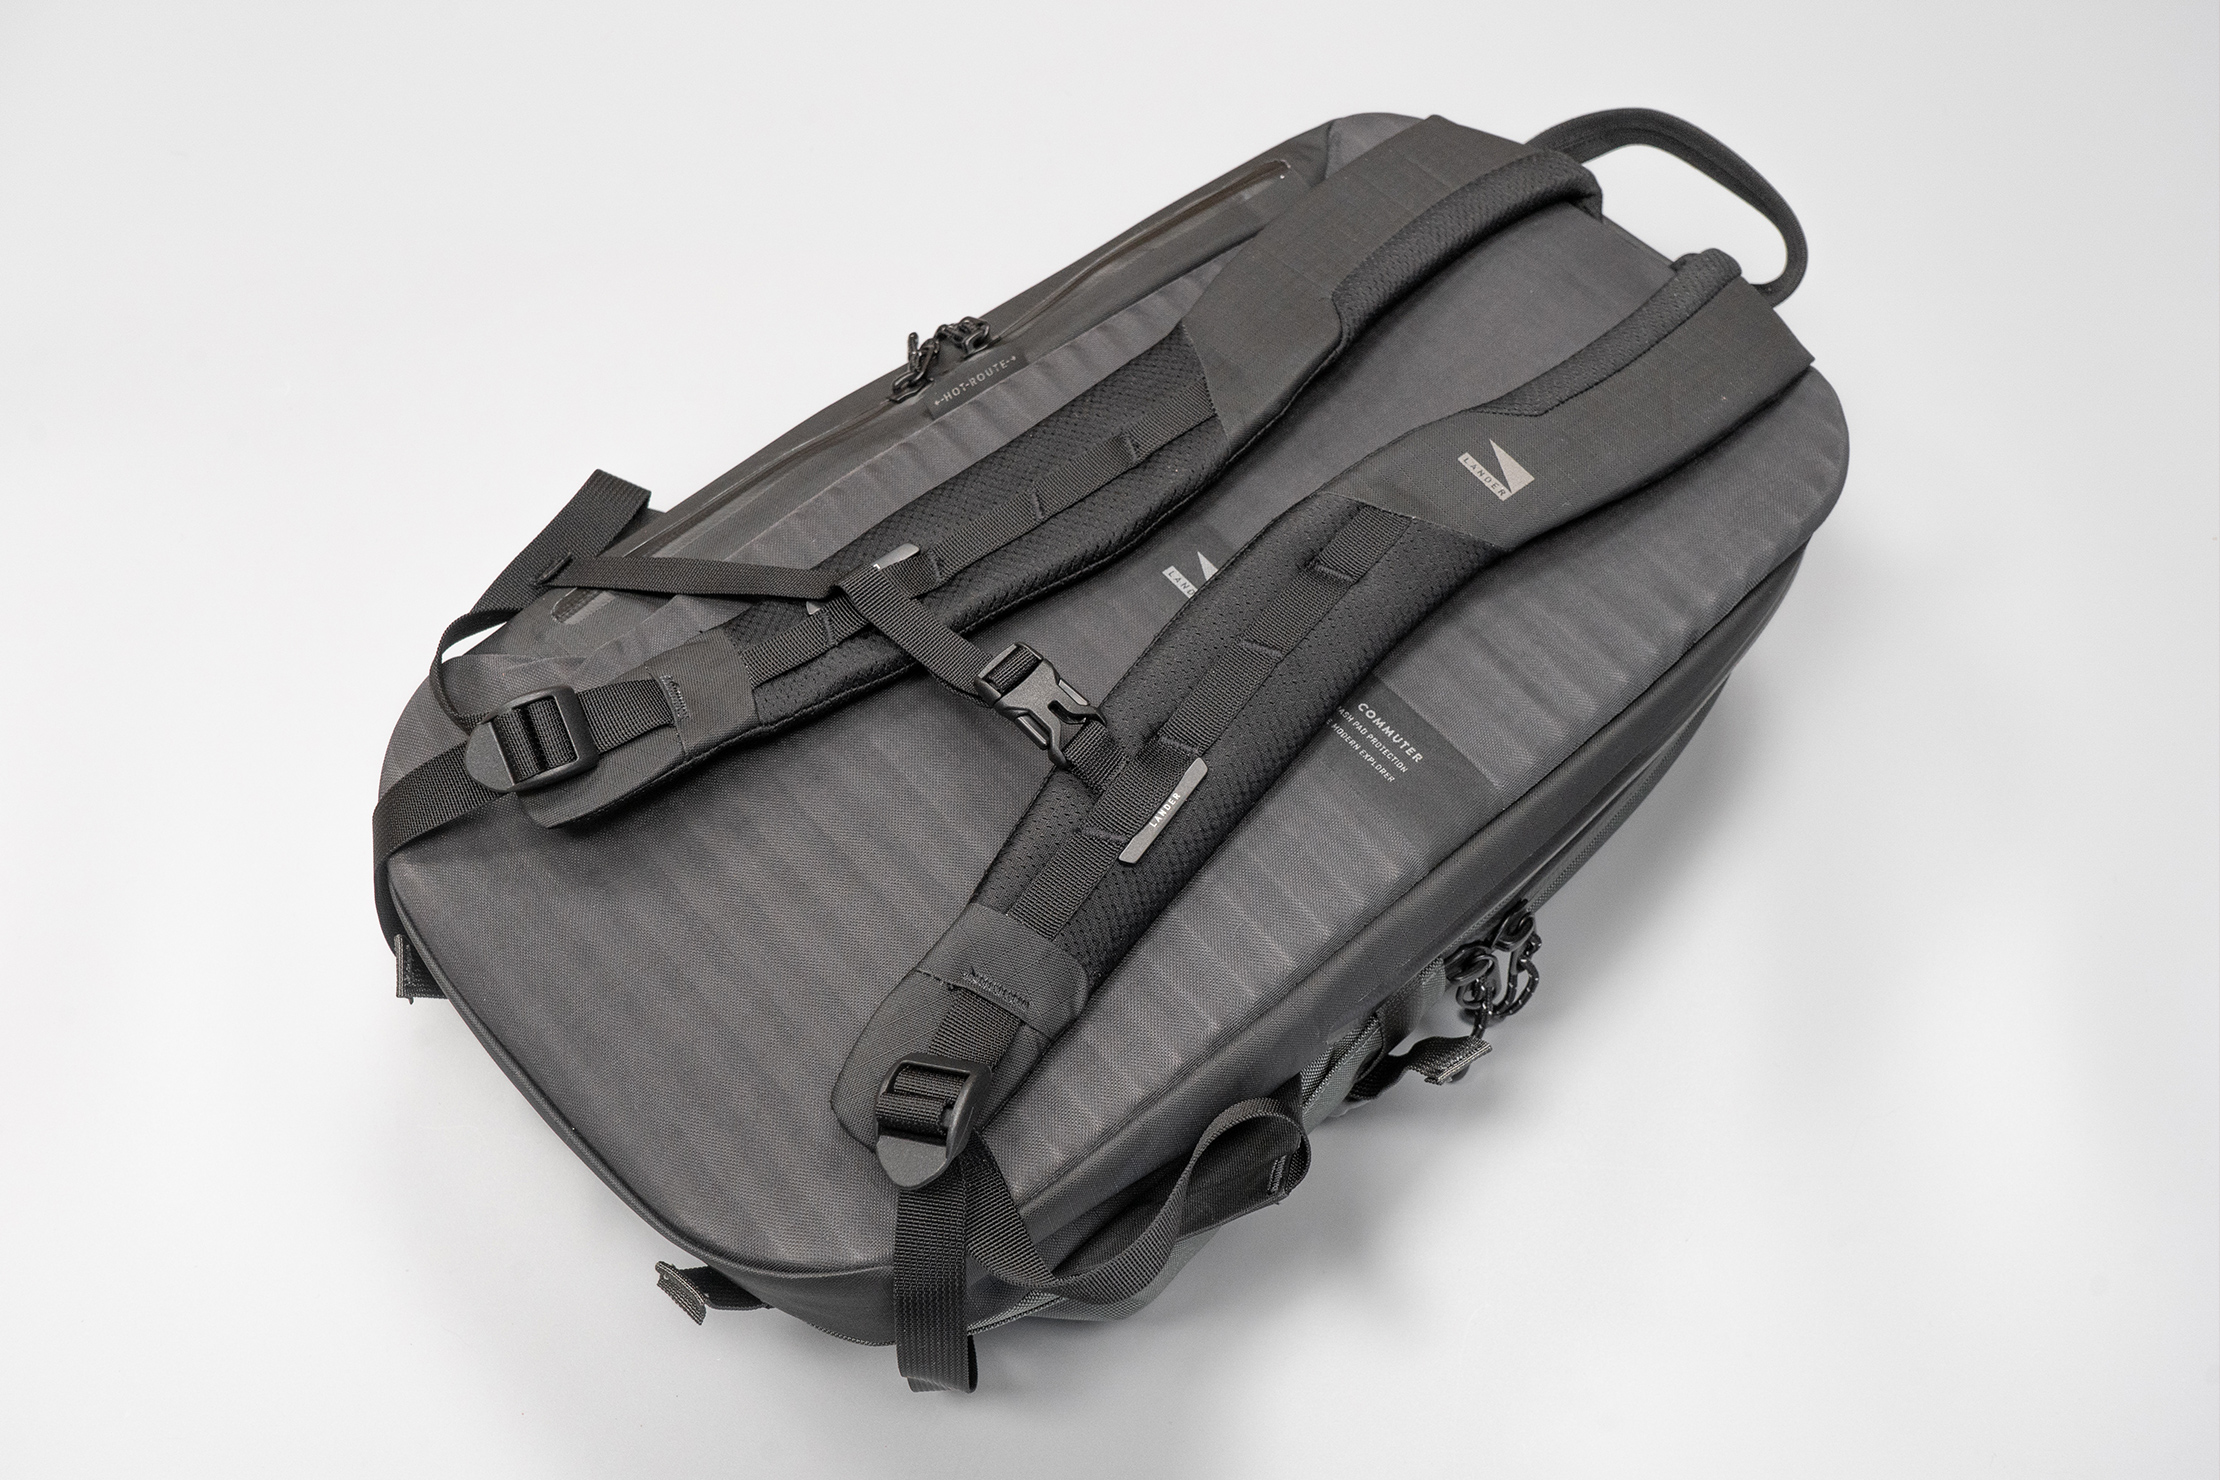 Lander Commuter Backpack 25L | Thick padding on the straps and back panel equal a comfortable carry as well